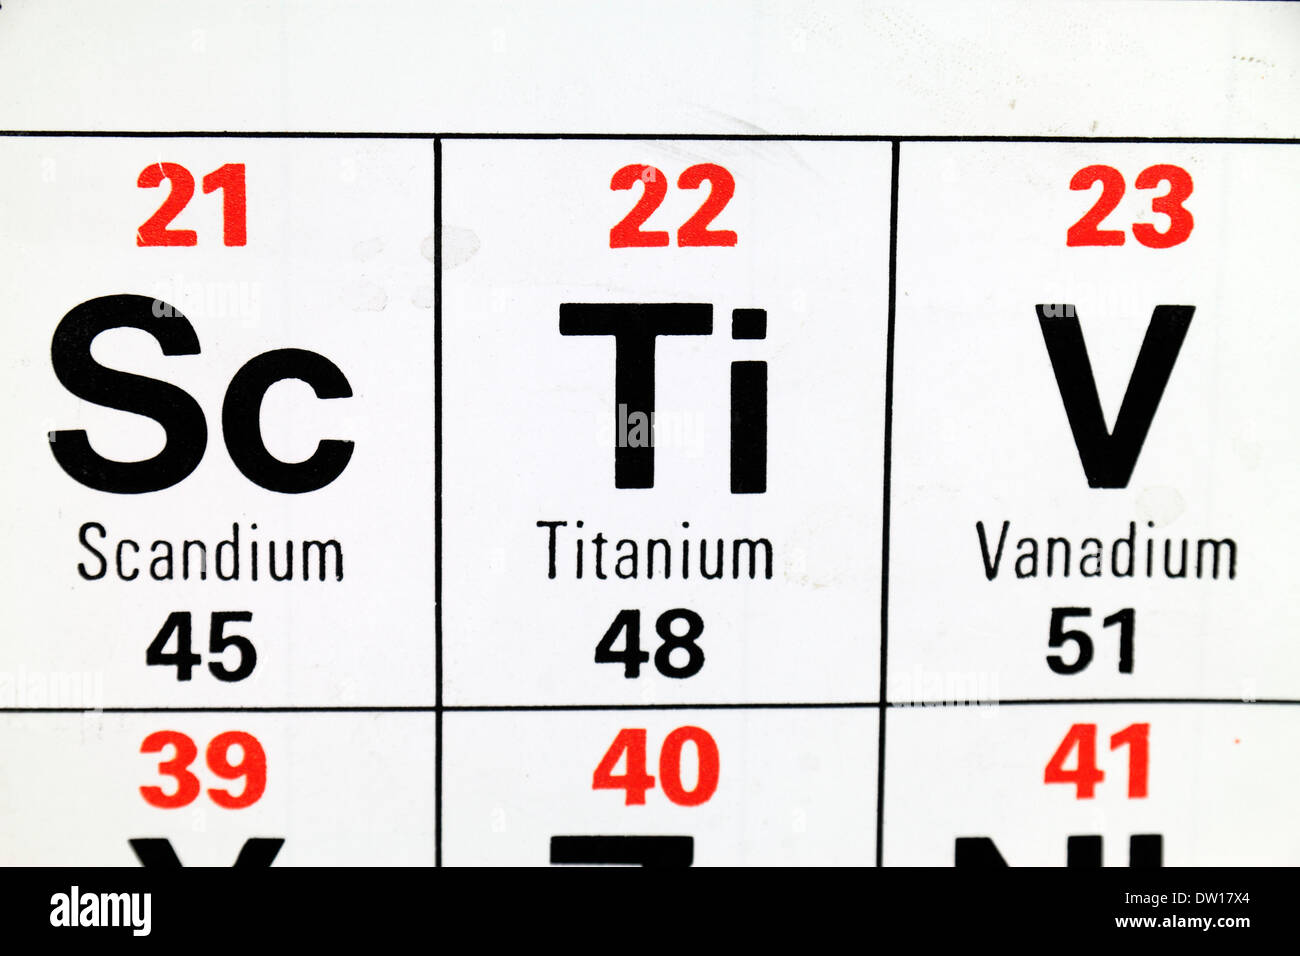 Titanium ti as it appears on the periodic table stock photo titanium ti as it appears on the periodic table urtaz Gallery